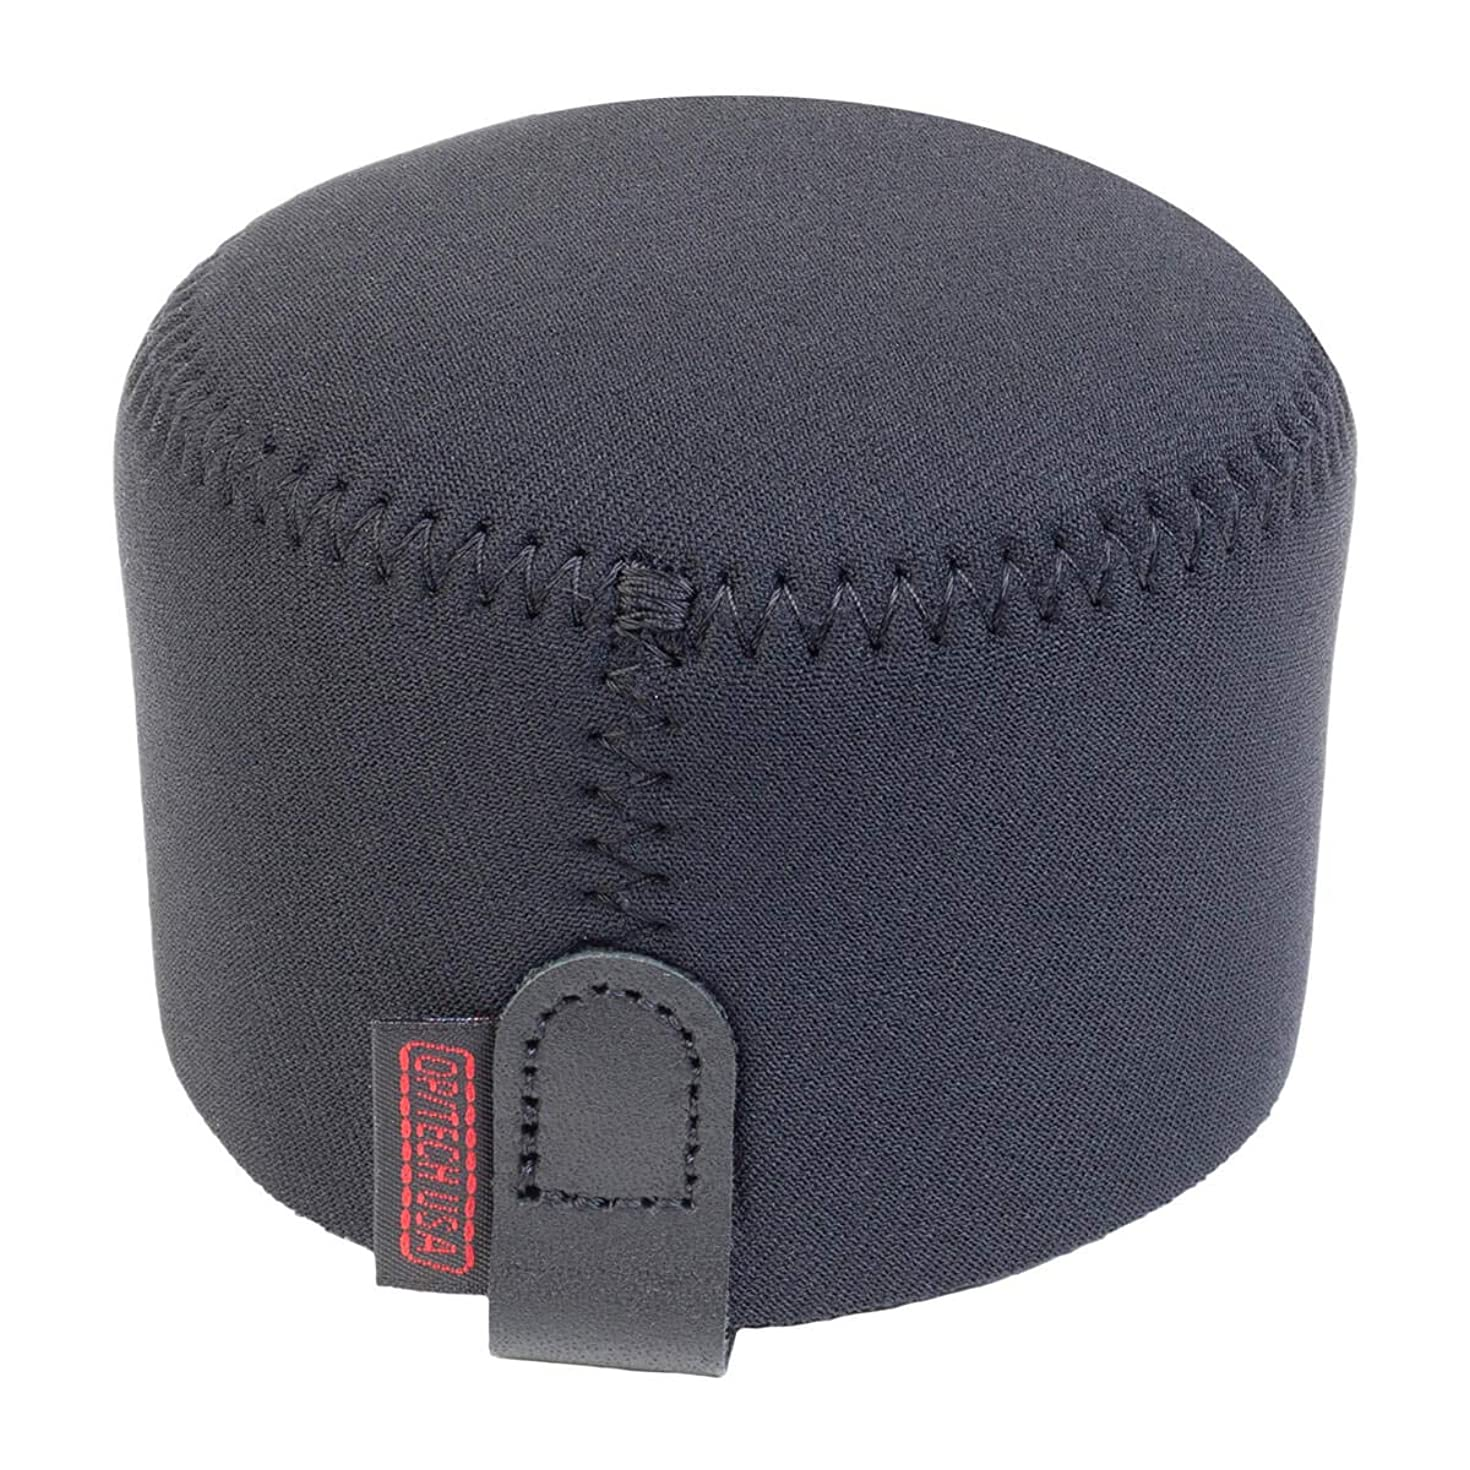 OP/TECH USA Hood Hat - Small (Black)